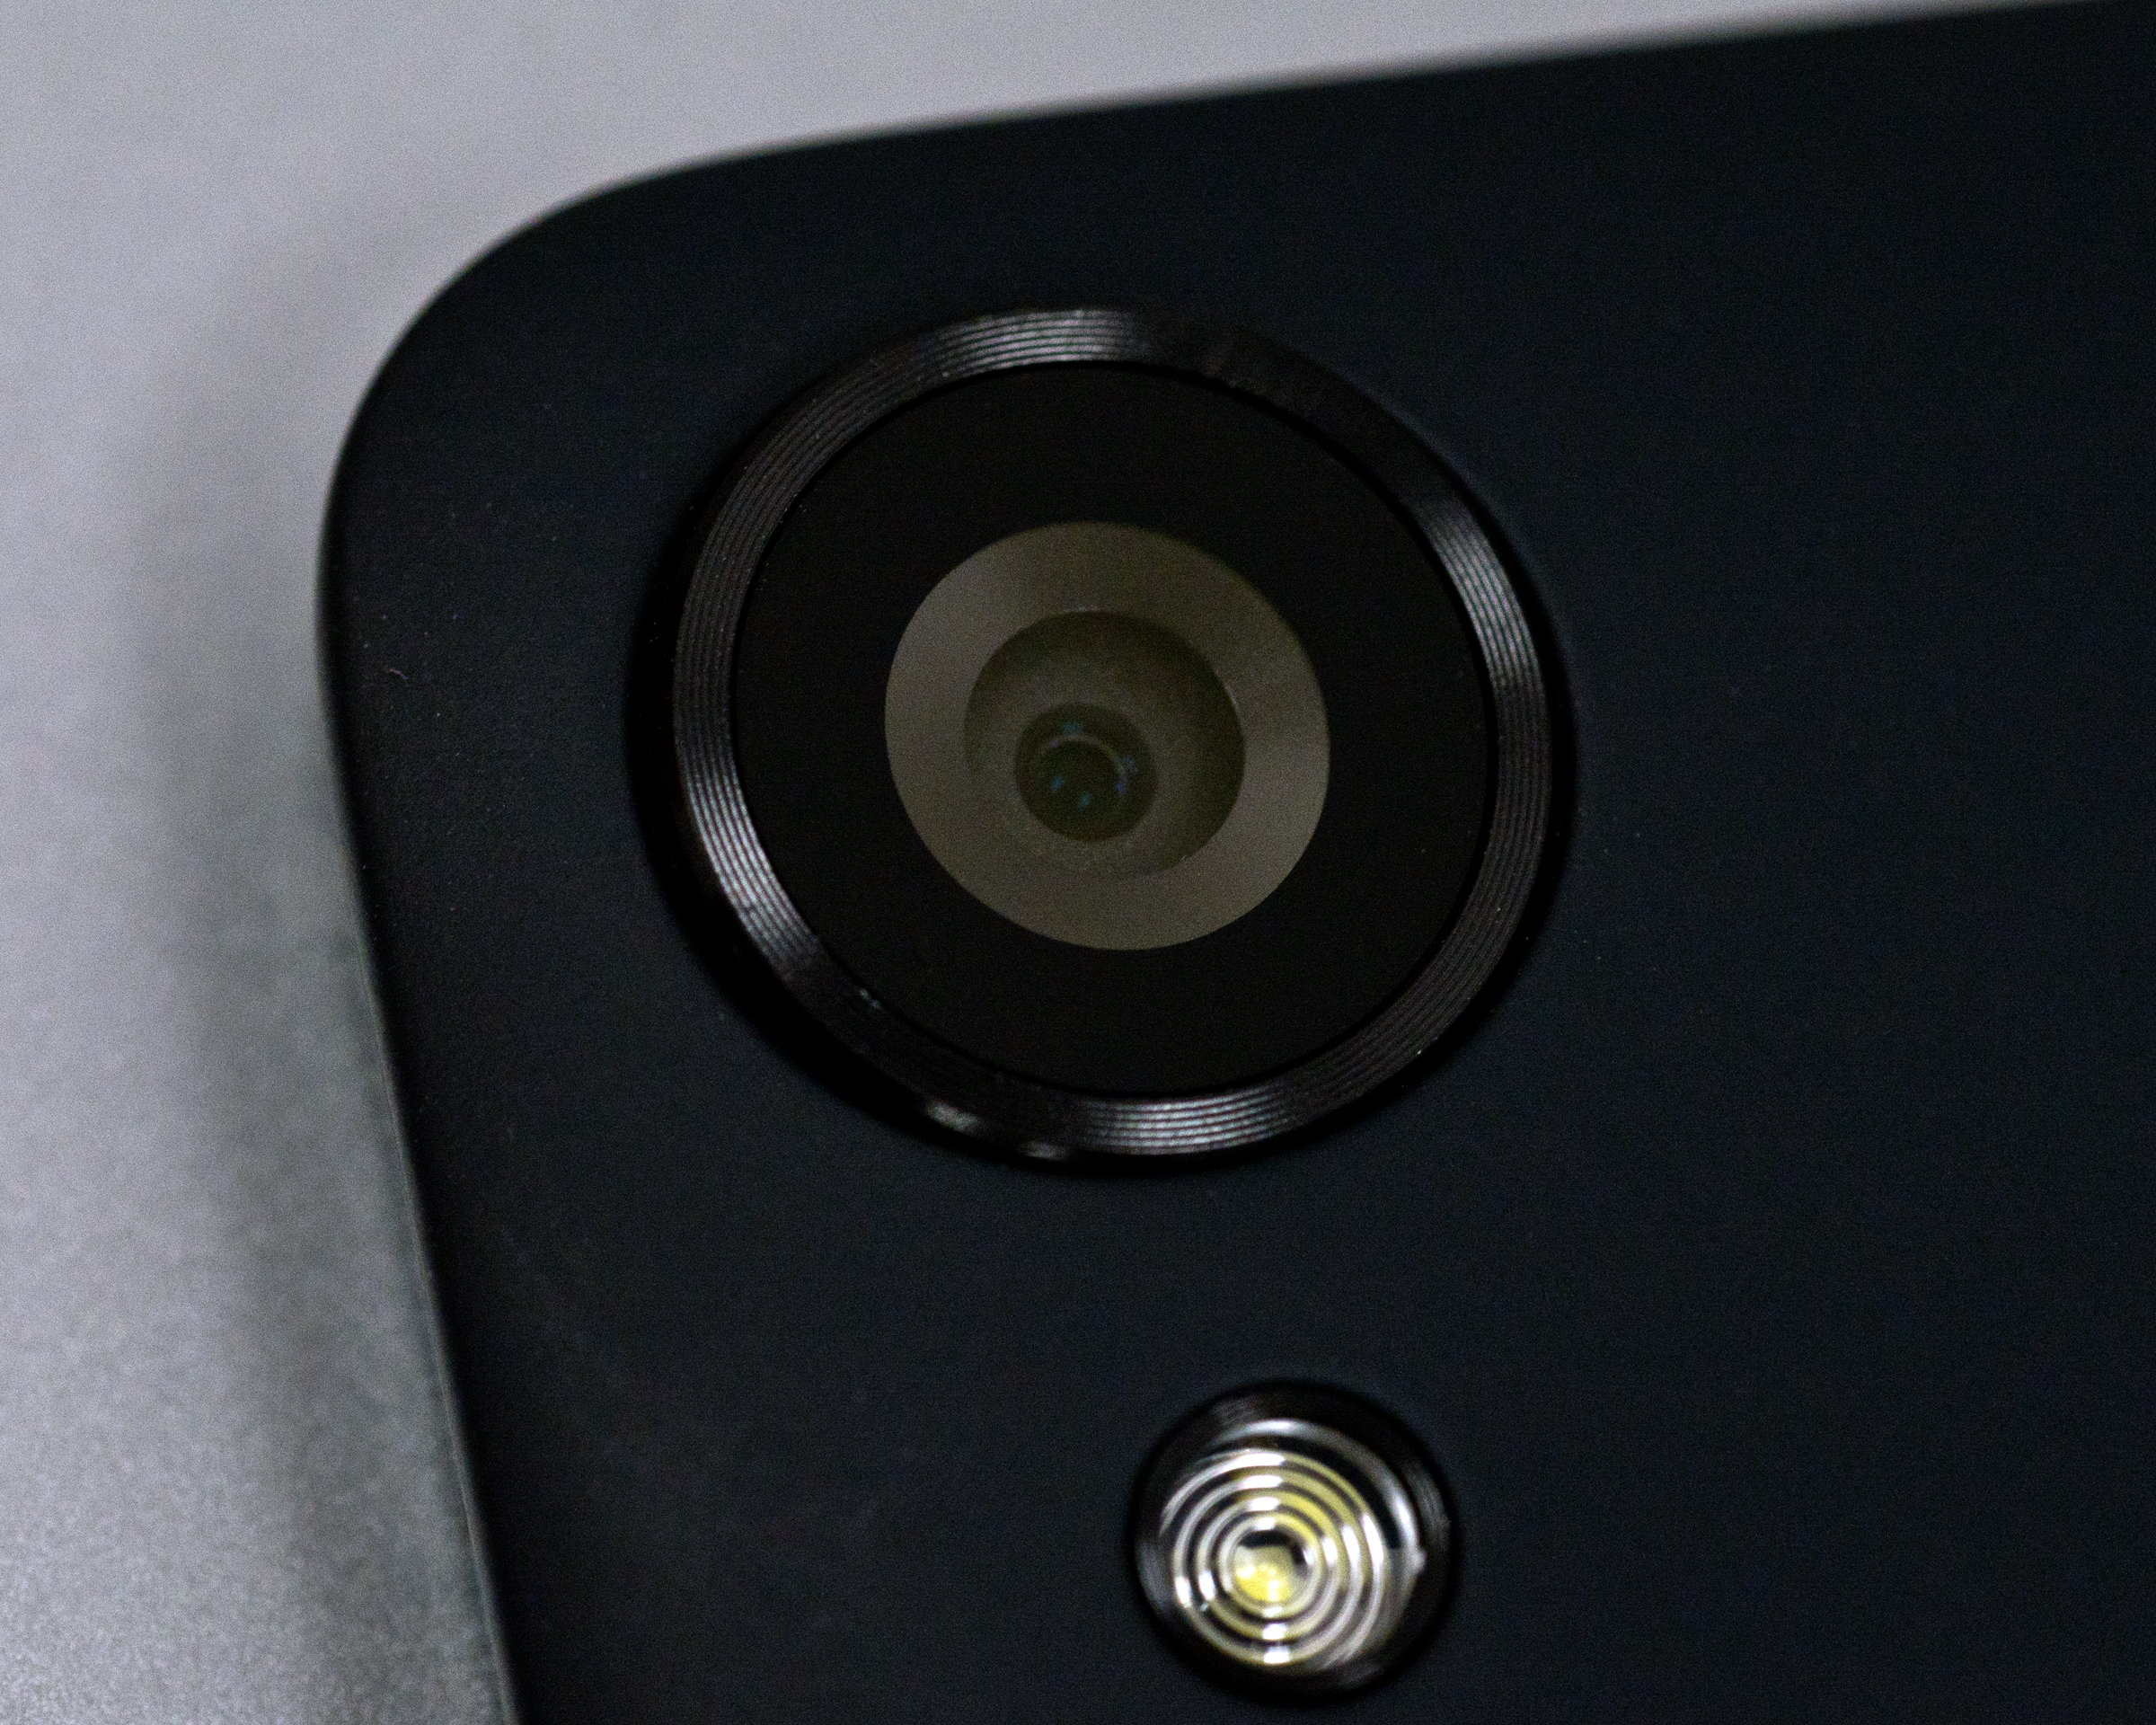 A photo of the Google Nexus 9's rear camera.